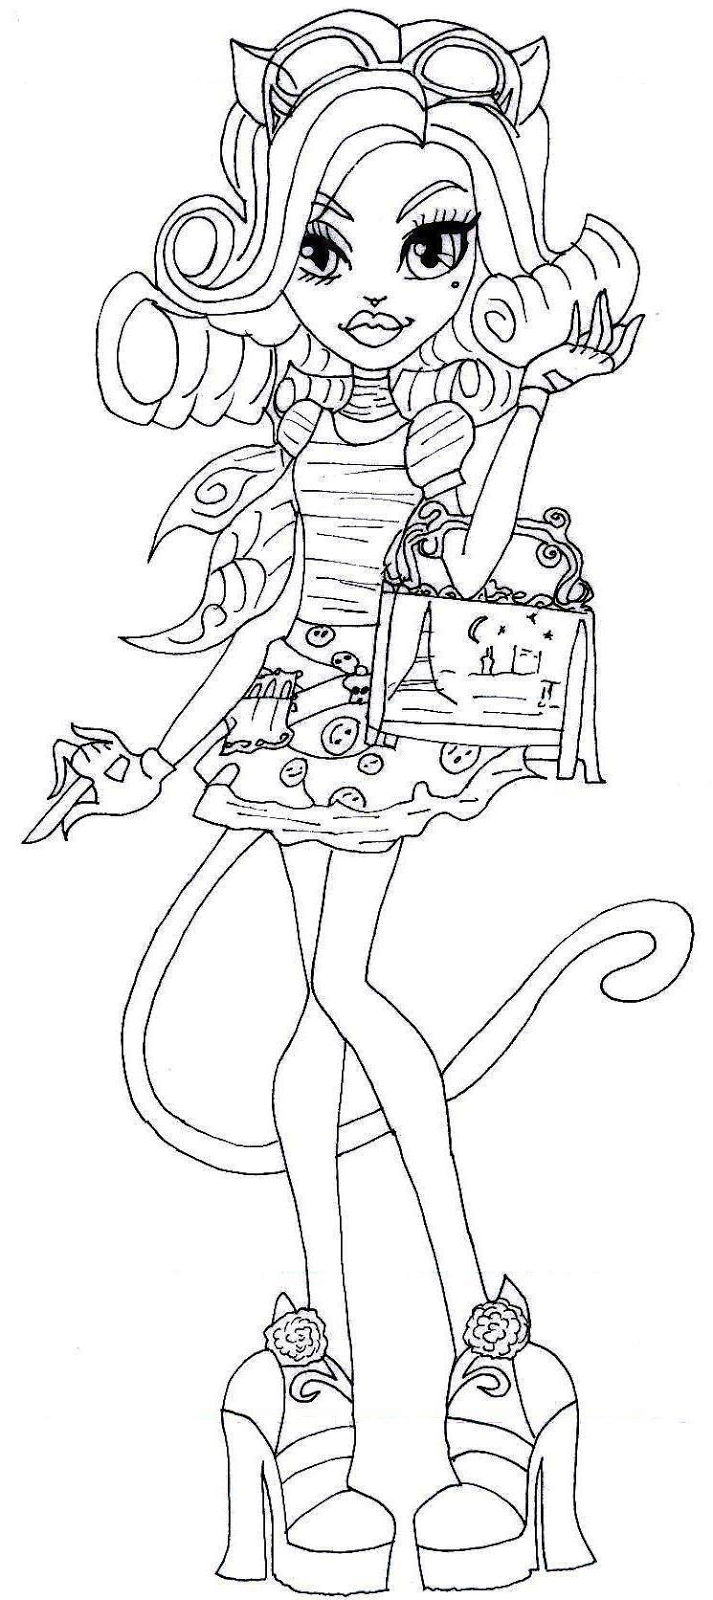 Free printable monster high coloring pages october 2013 for Monster high free coloring pages